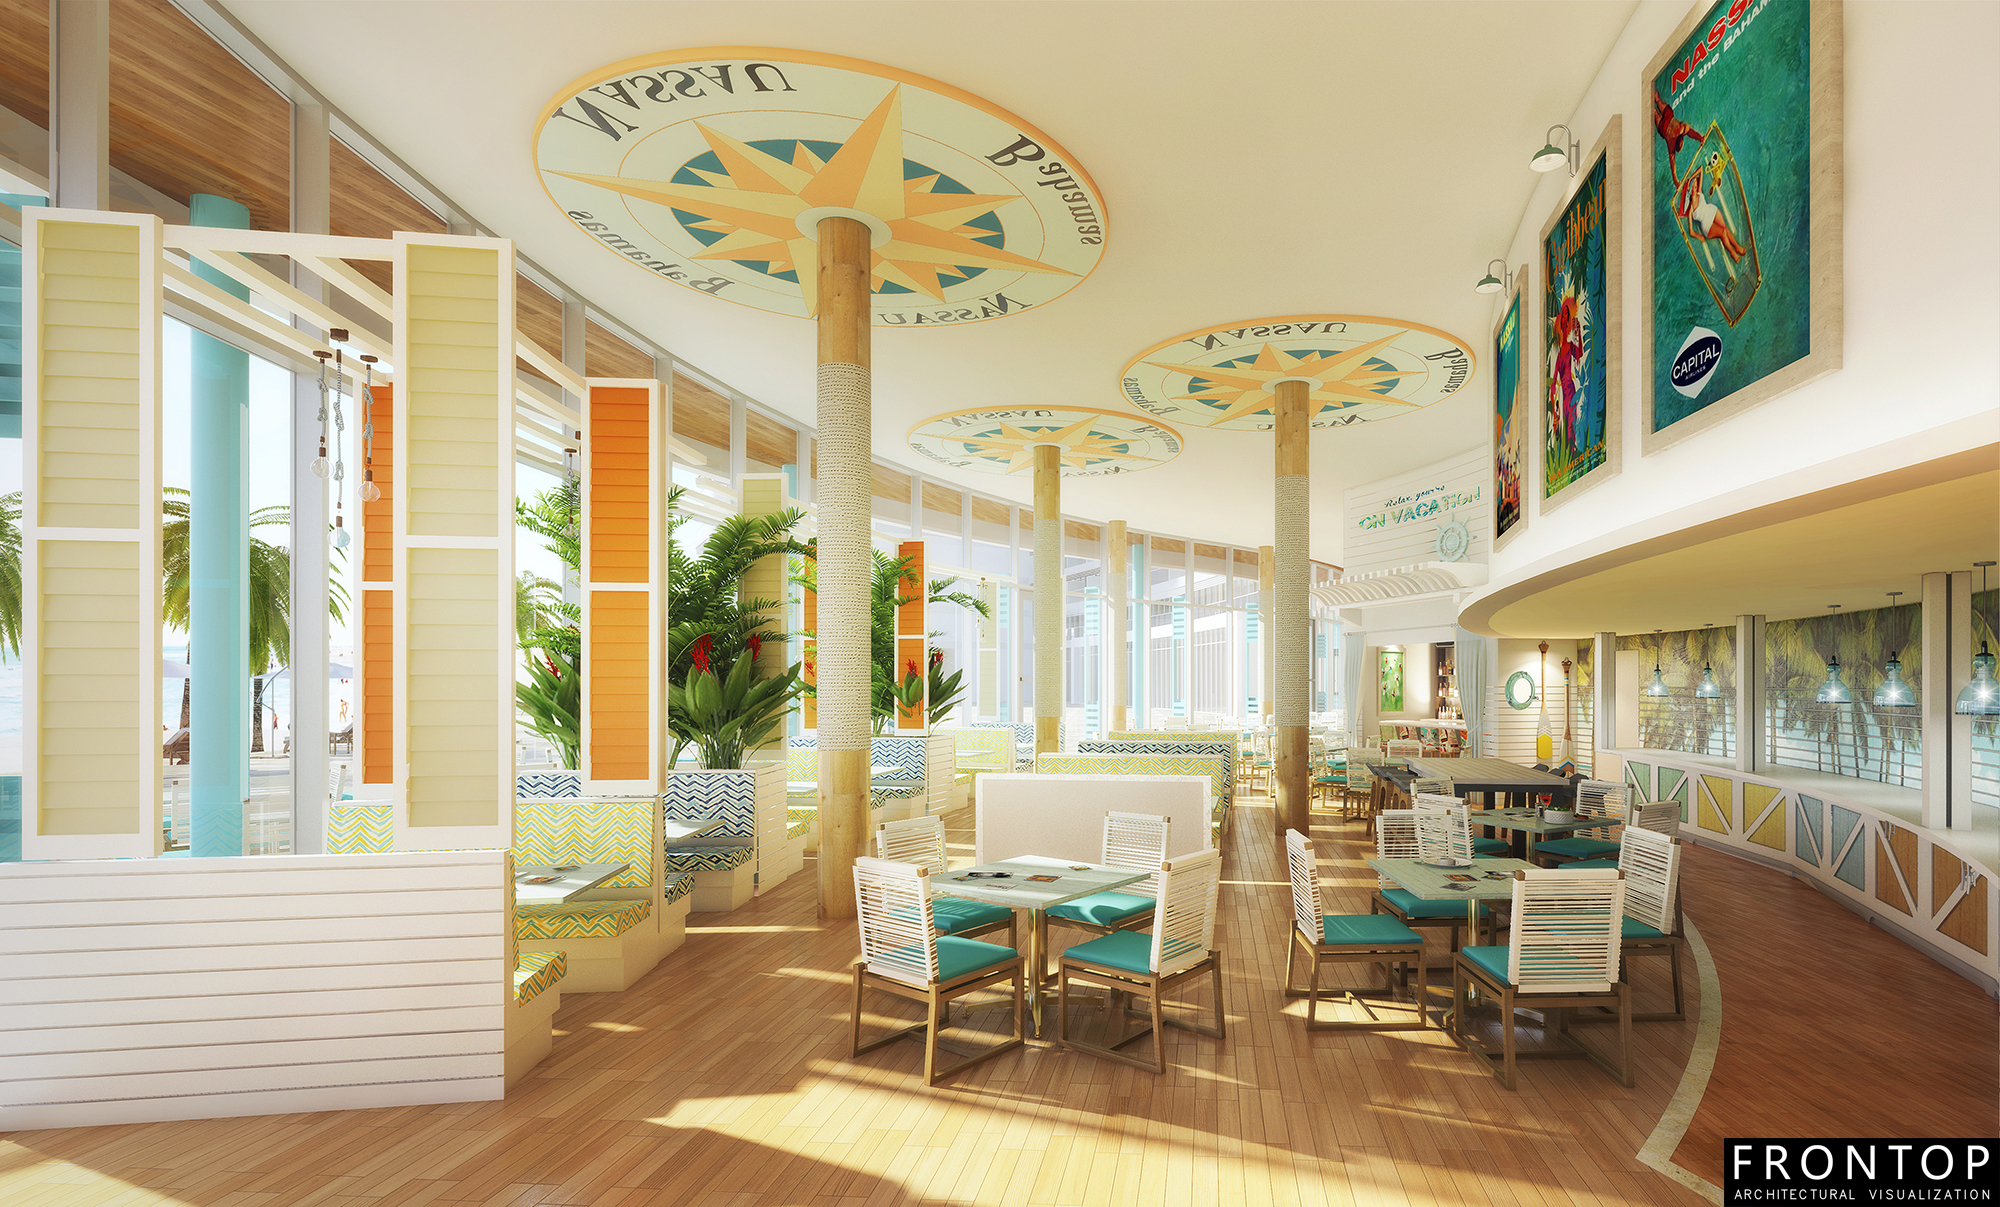 High Performance 3d Rendering Design For Restaurant -